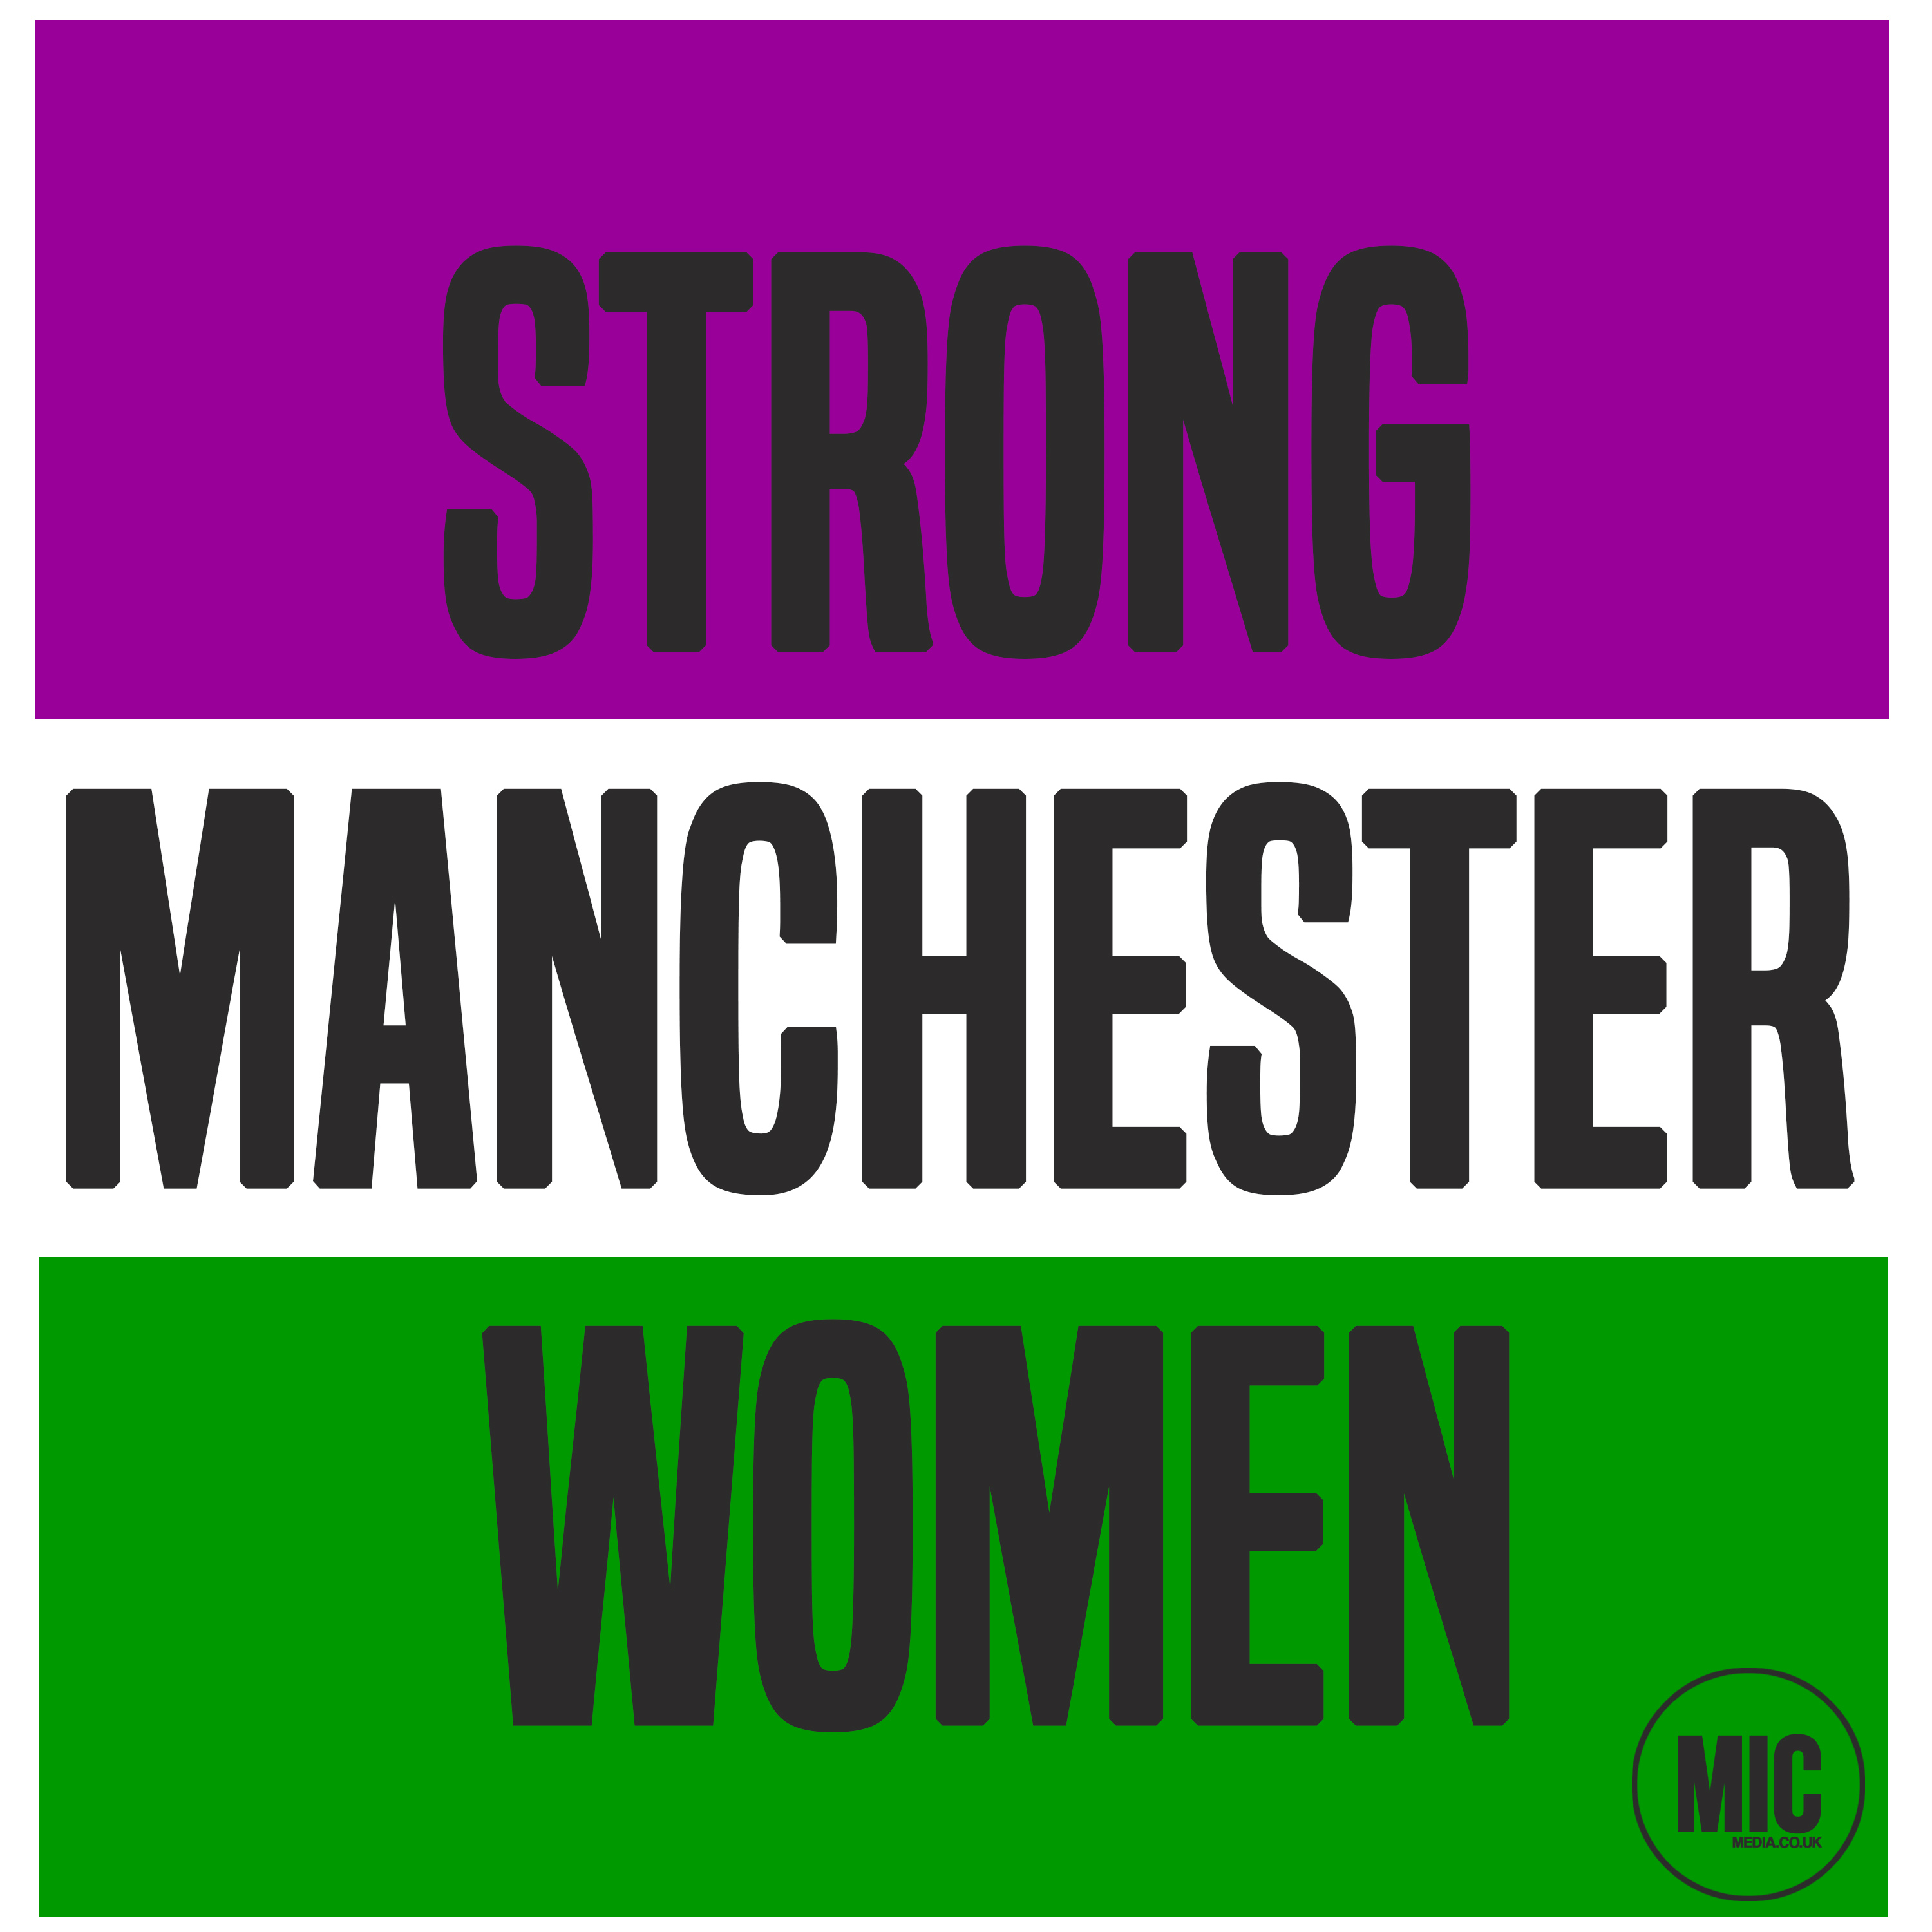 words 'strong manchester women' is in grey text and capital letters. They sit on a purple, white and green background